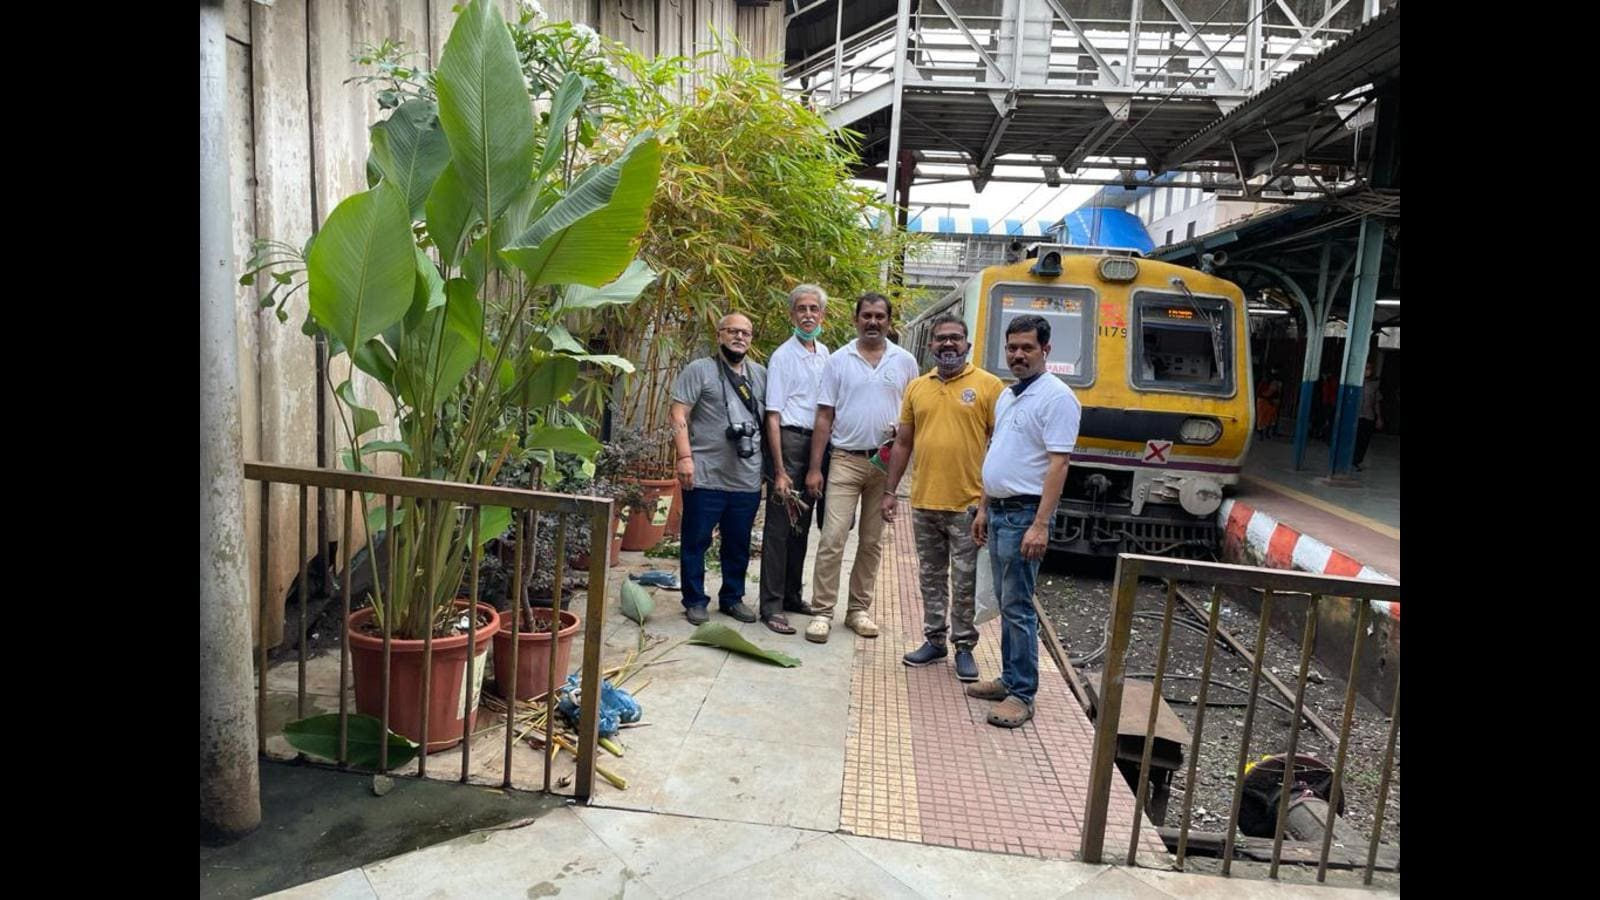 Thane railway station platforms get fresh look with plants, flowers